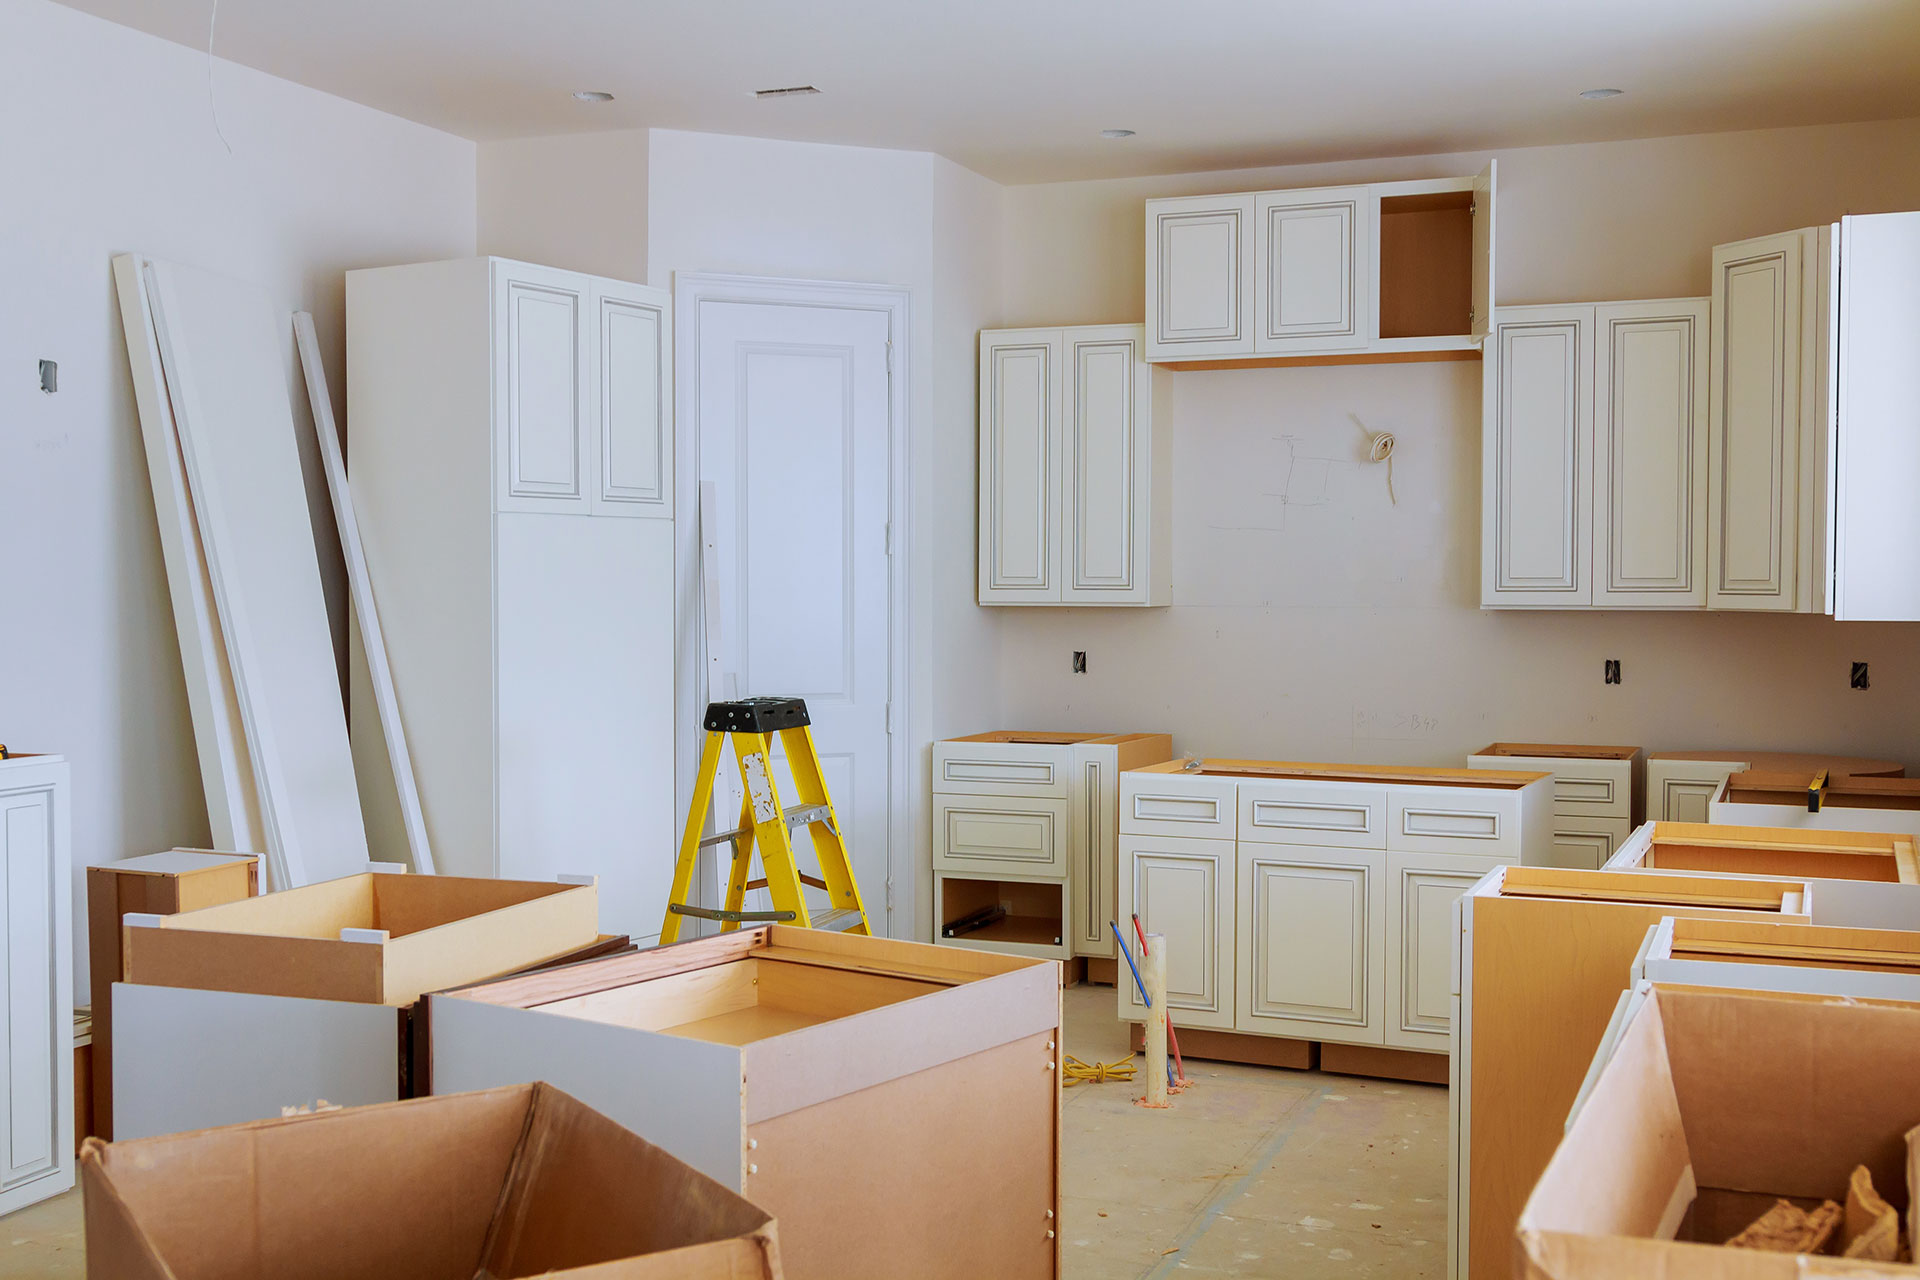 The Best Cabinet Installation Service in Port St. Lucie FL ...